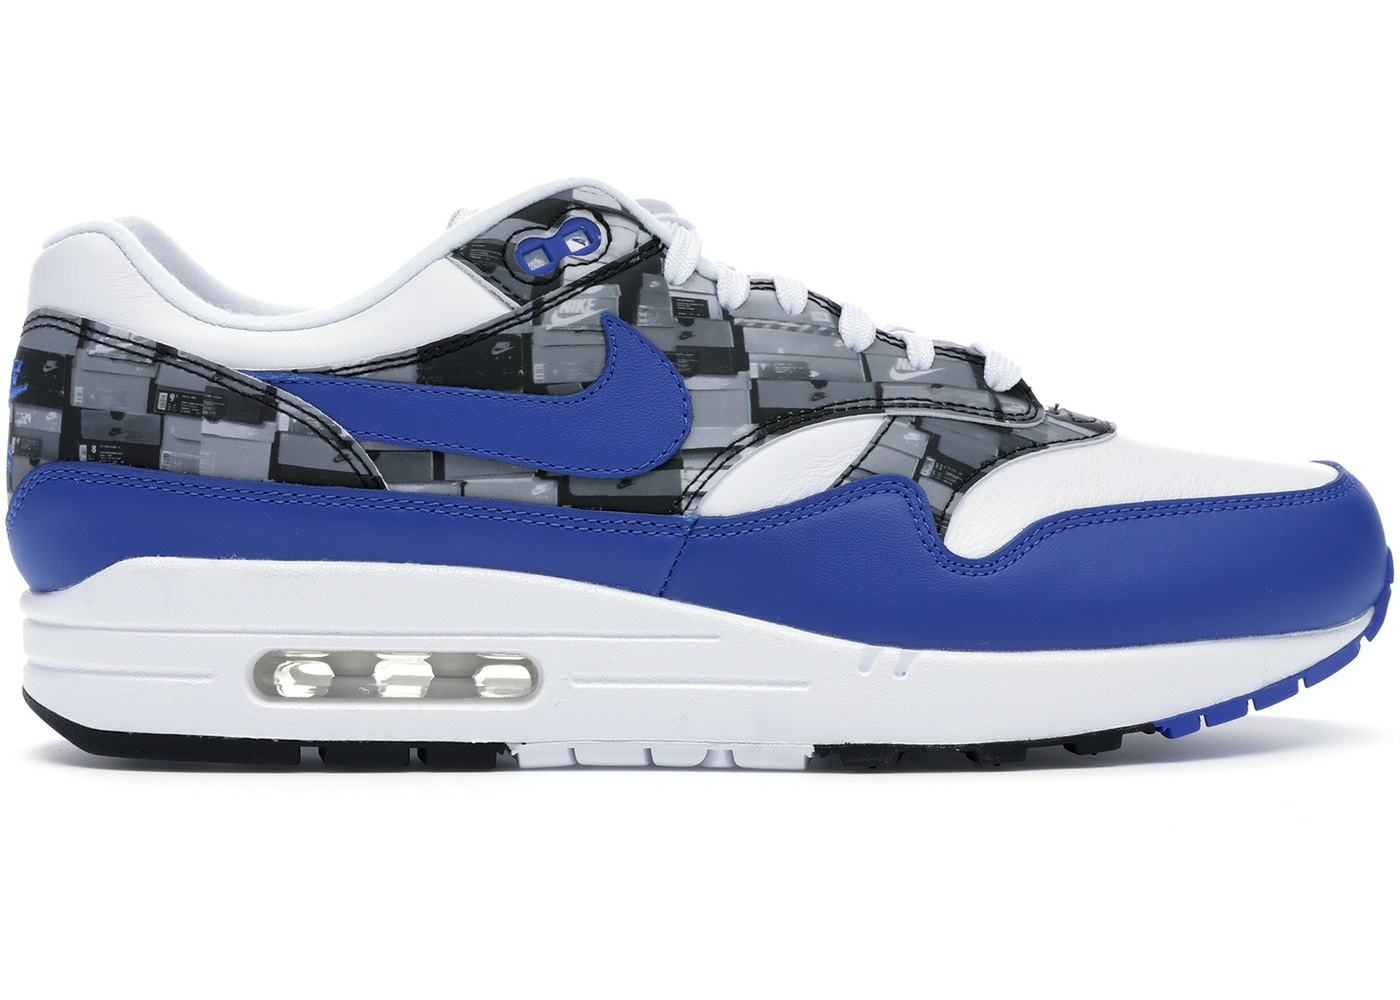 abdc5913a5 Buy Nike Air Max 1 Shoes & Deadstock Sneakers